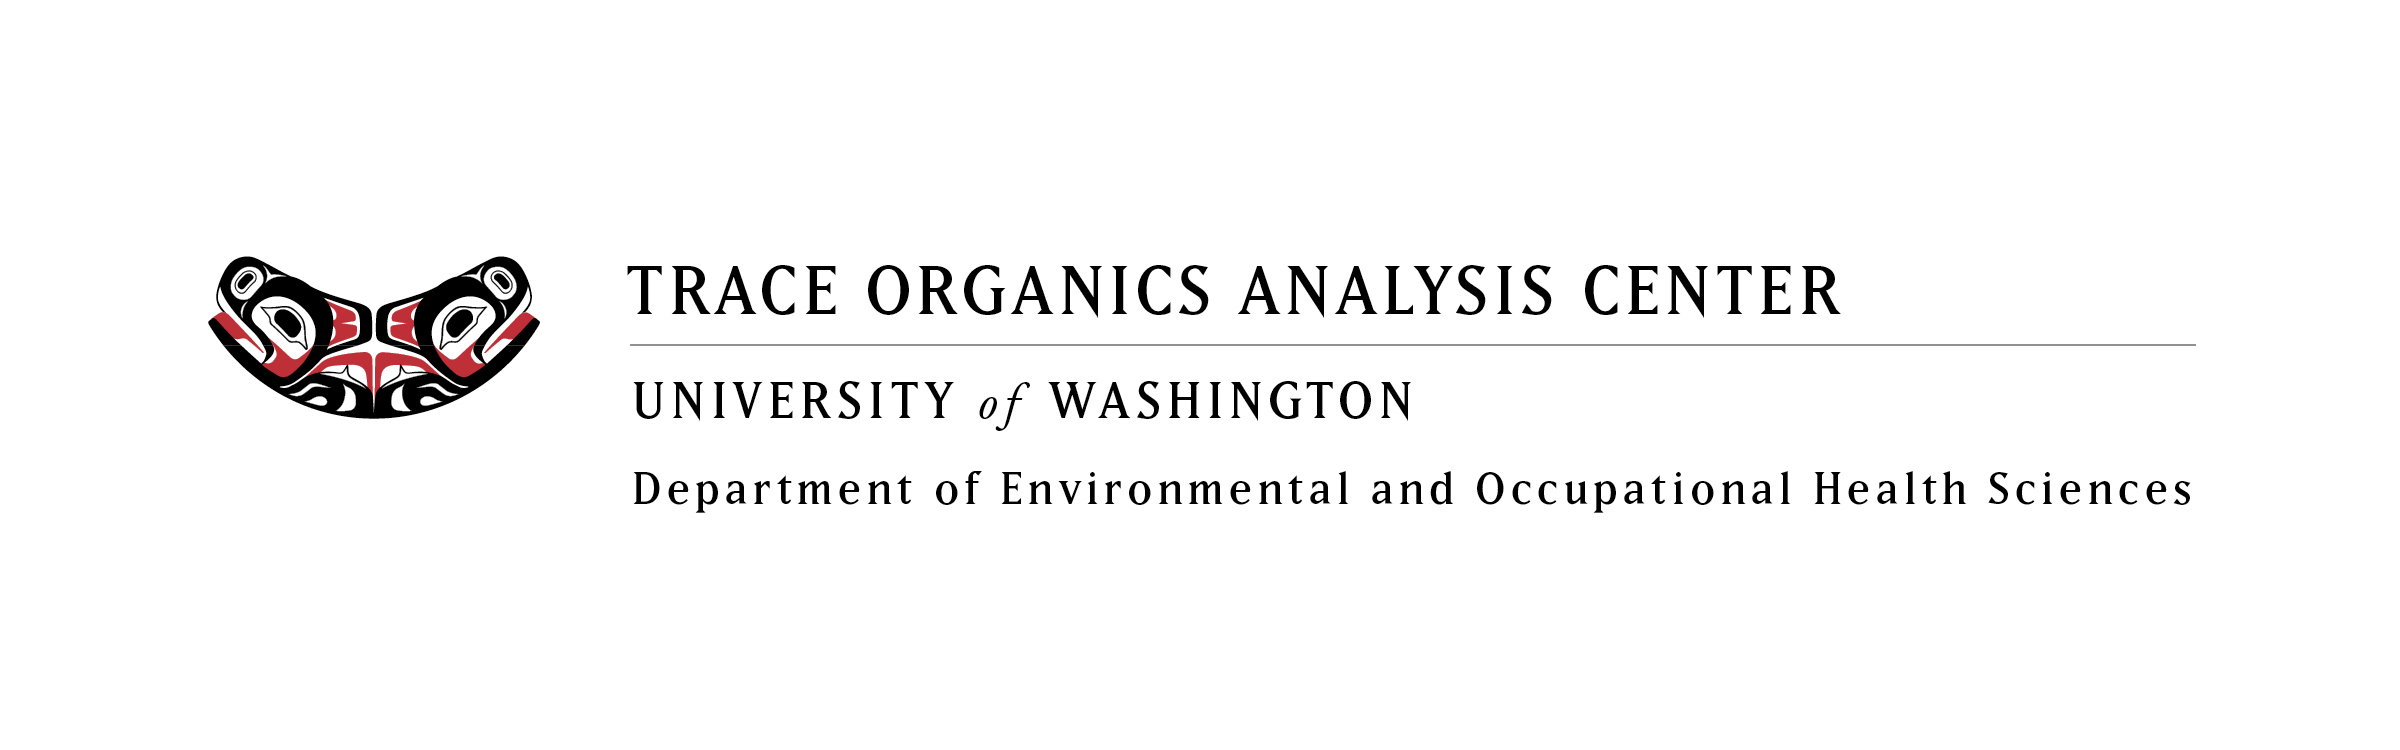 Trace Organics Analysis Center